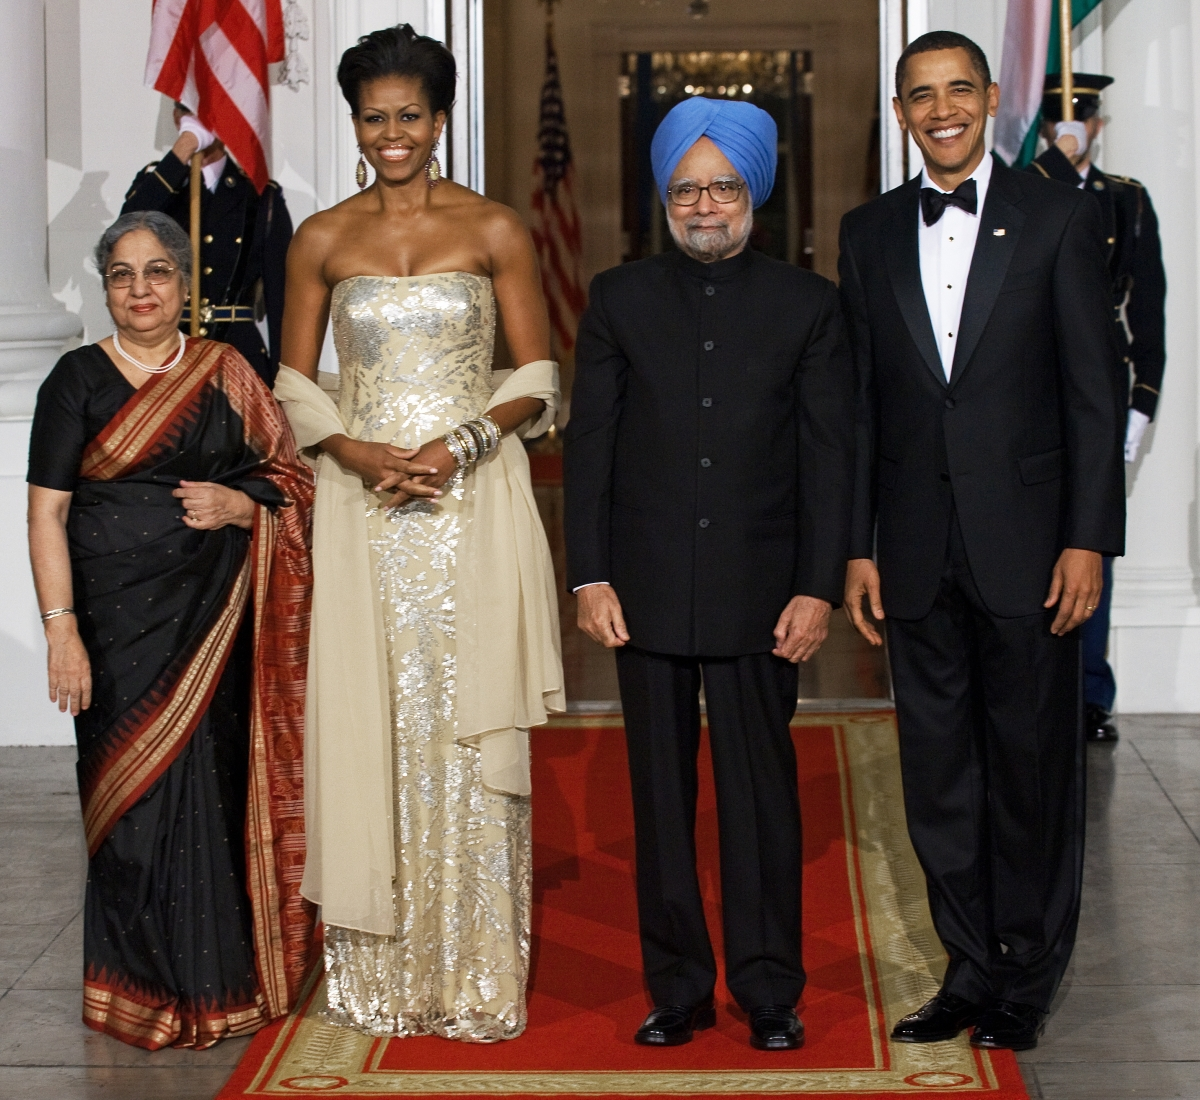 Wearing Naeem Khan to a state dinner welcoming Indian President Manmohan Singh and his wife Gursharan Kaur on November 23, 2009. (Nicholas Kamm/AFP/Getty Images)